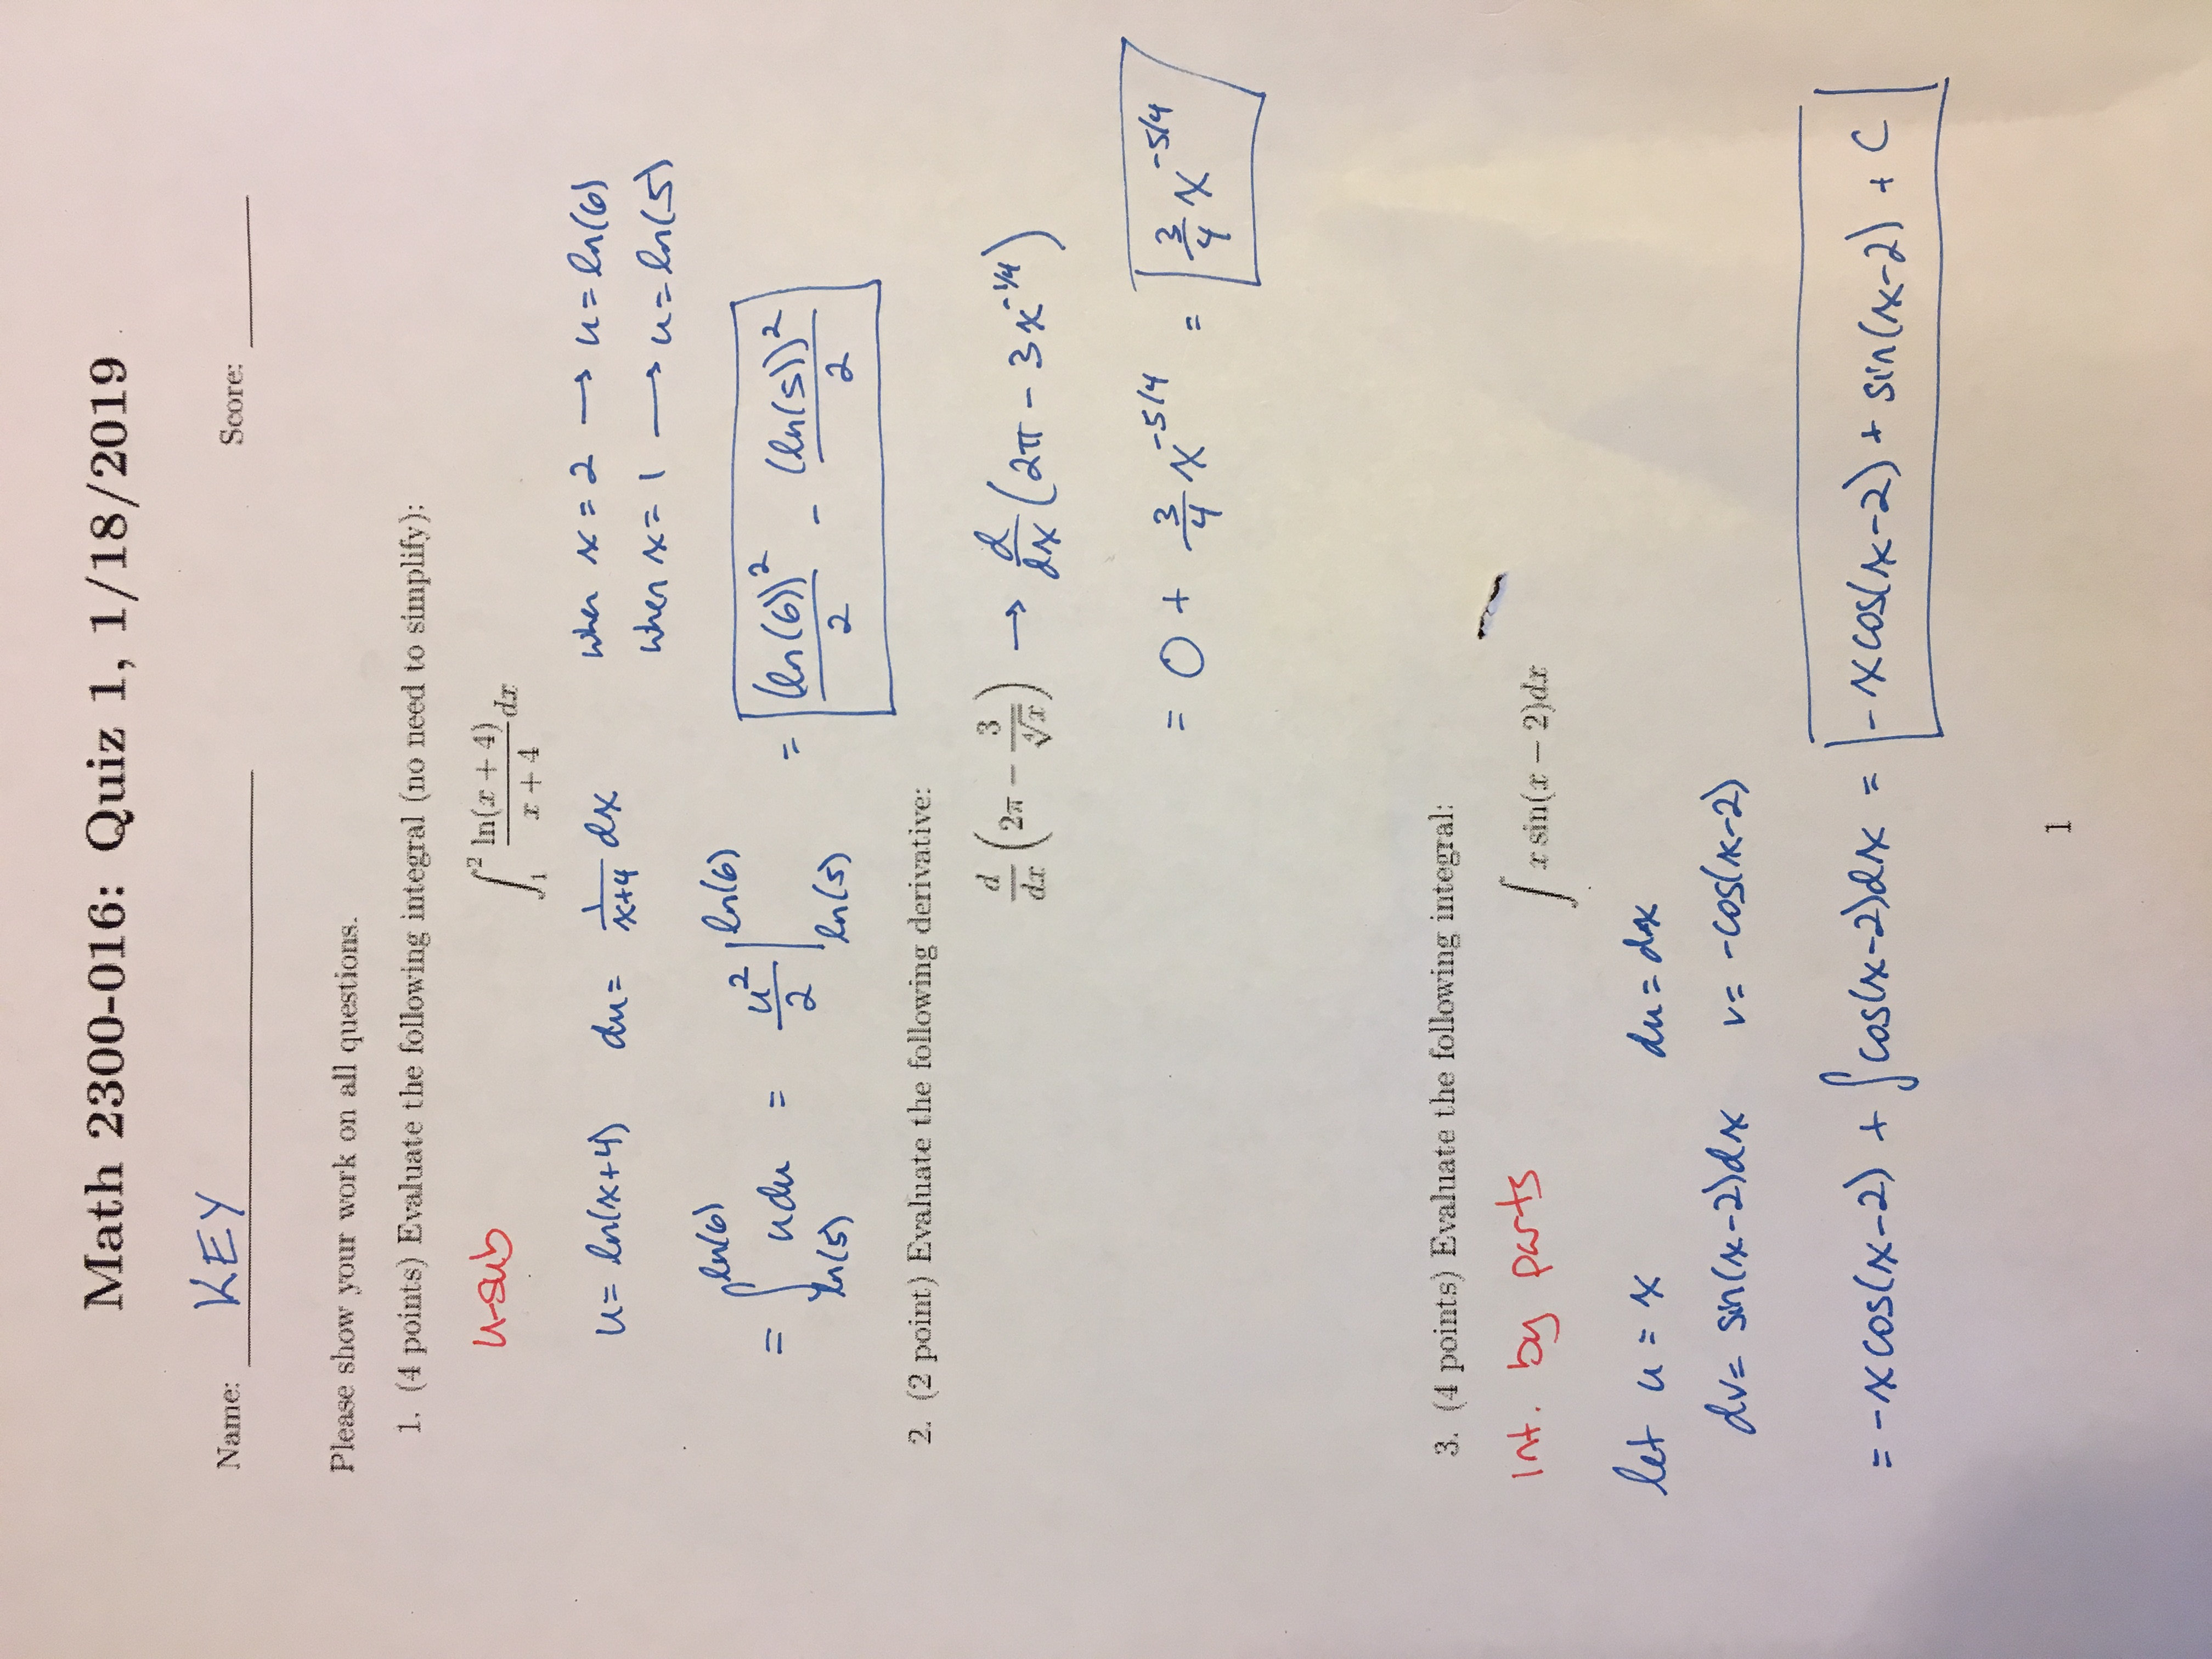 Trig Derivatives Worksheet Following Class Notes Printable Worksheets And Activities For Teachers Parents Tutors And Homeschool Families Show mobile notice show all notes hide all notes. indymoves org